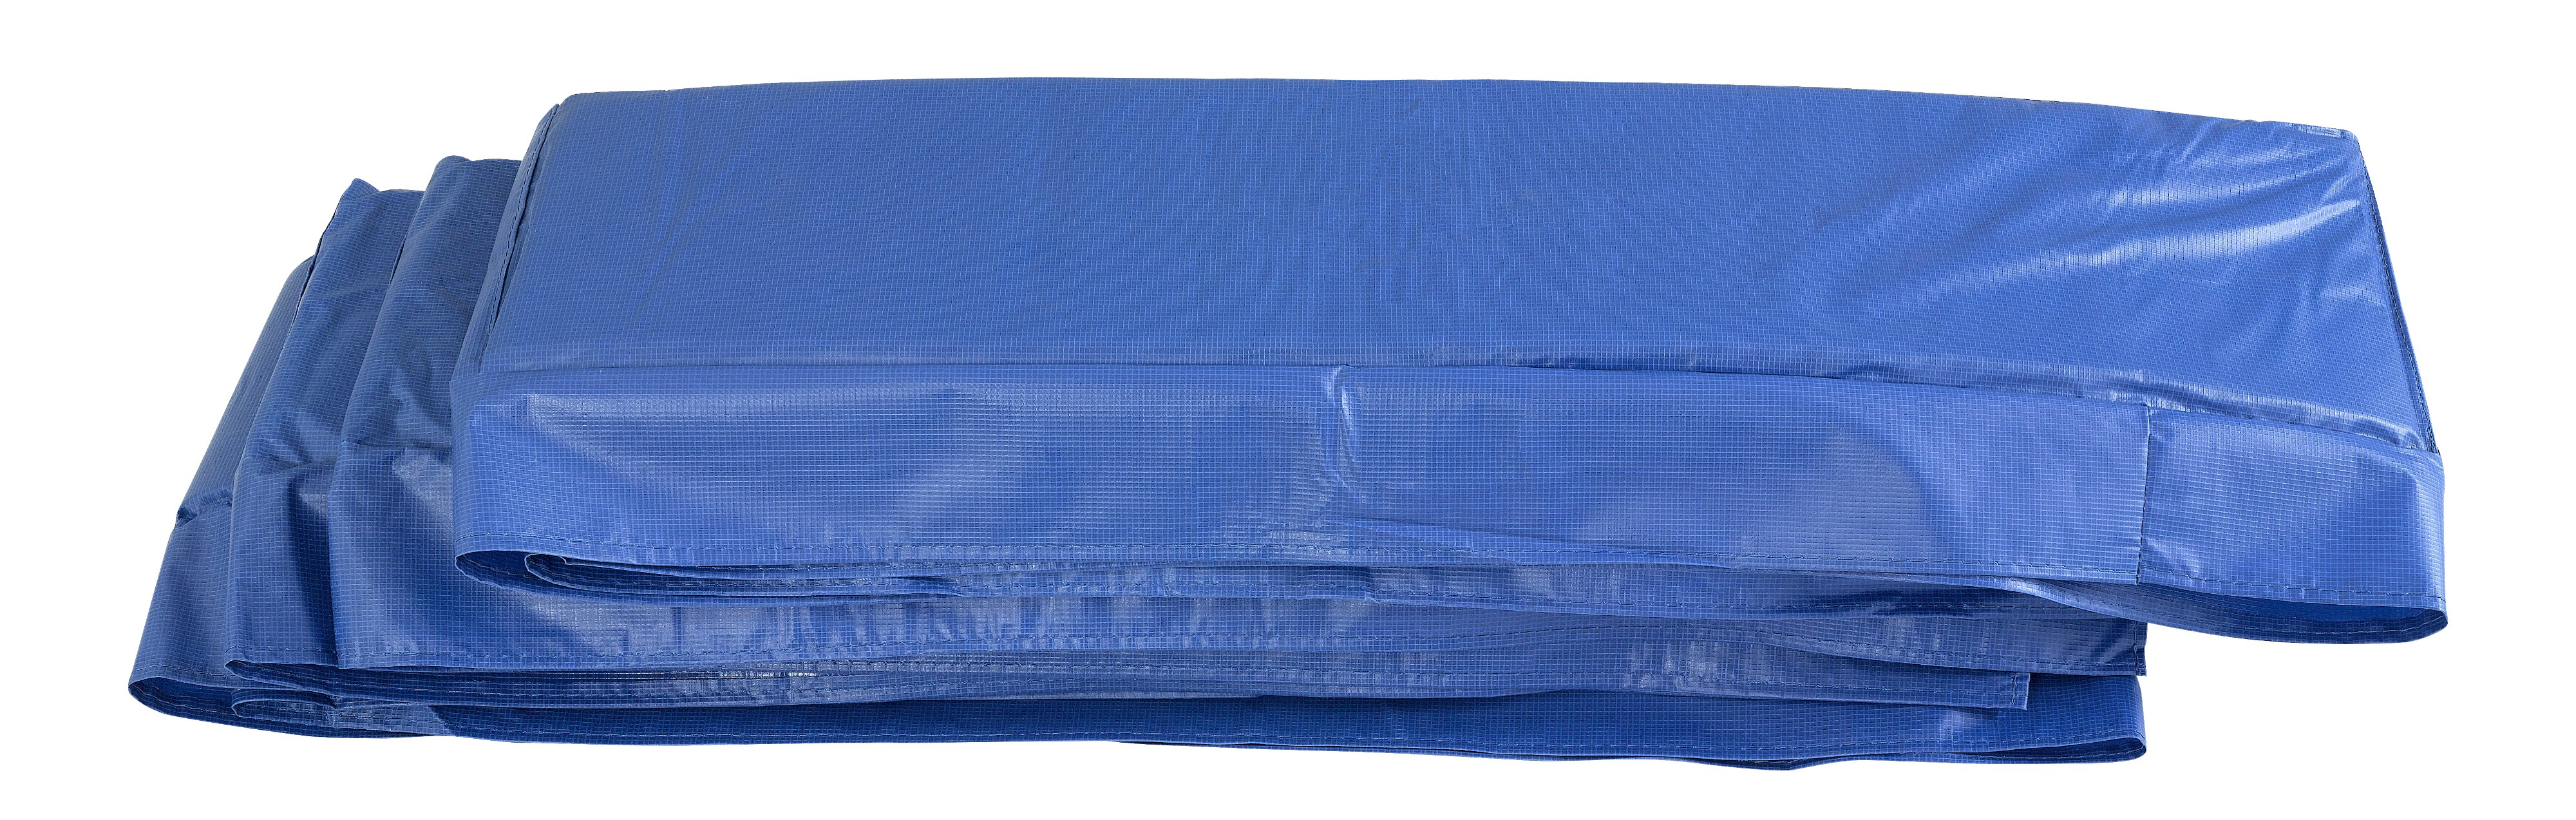 Super Trampoline Replacement Safety Pad (Spring Cover) for 8 x 14 FT. Rectangular Frames - Blue